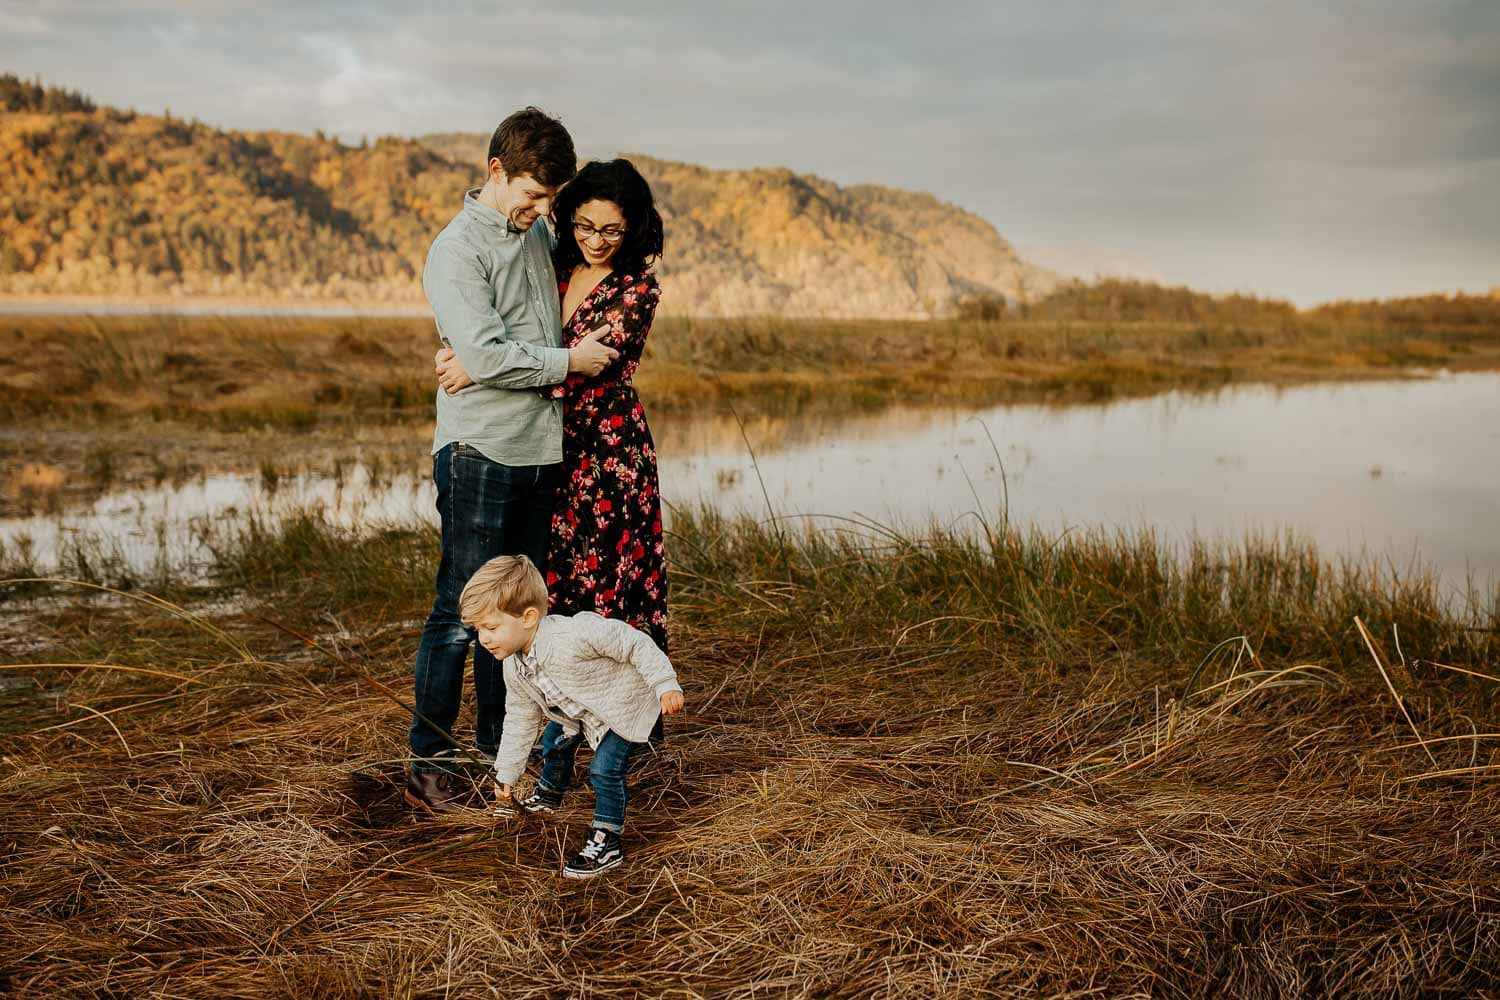 Mom, dad, and toddler in front of a puddle and mountain